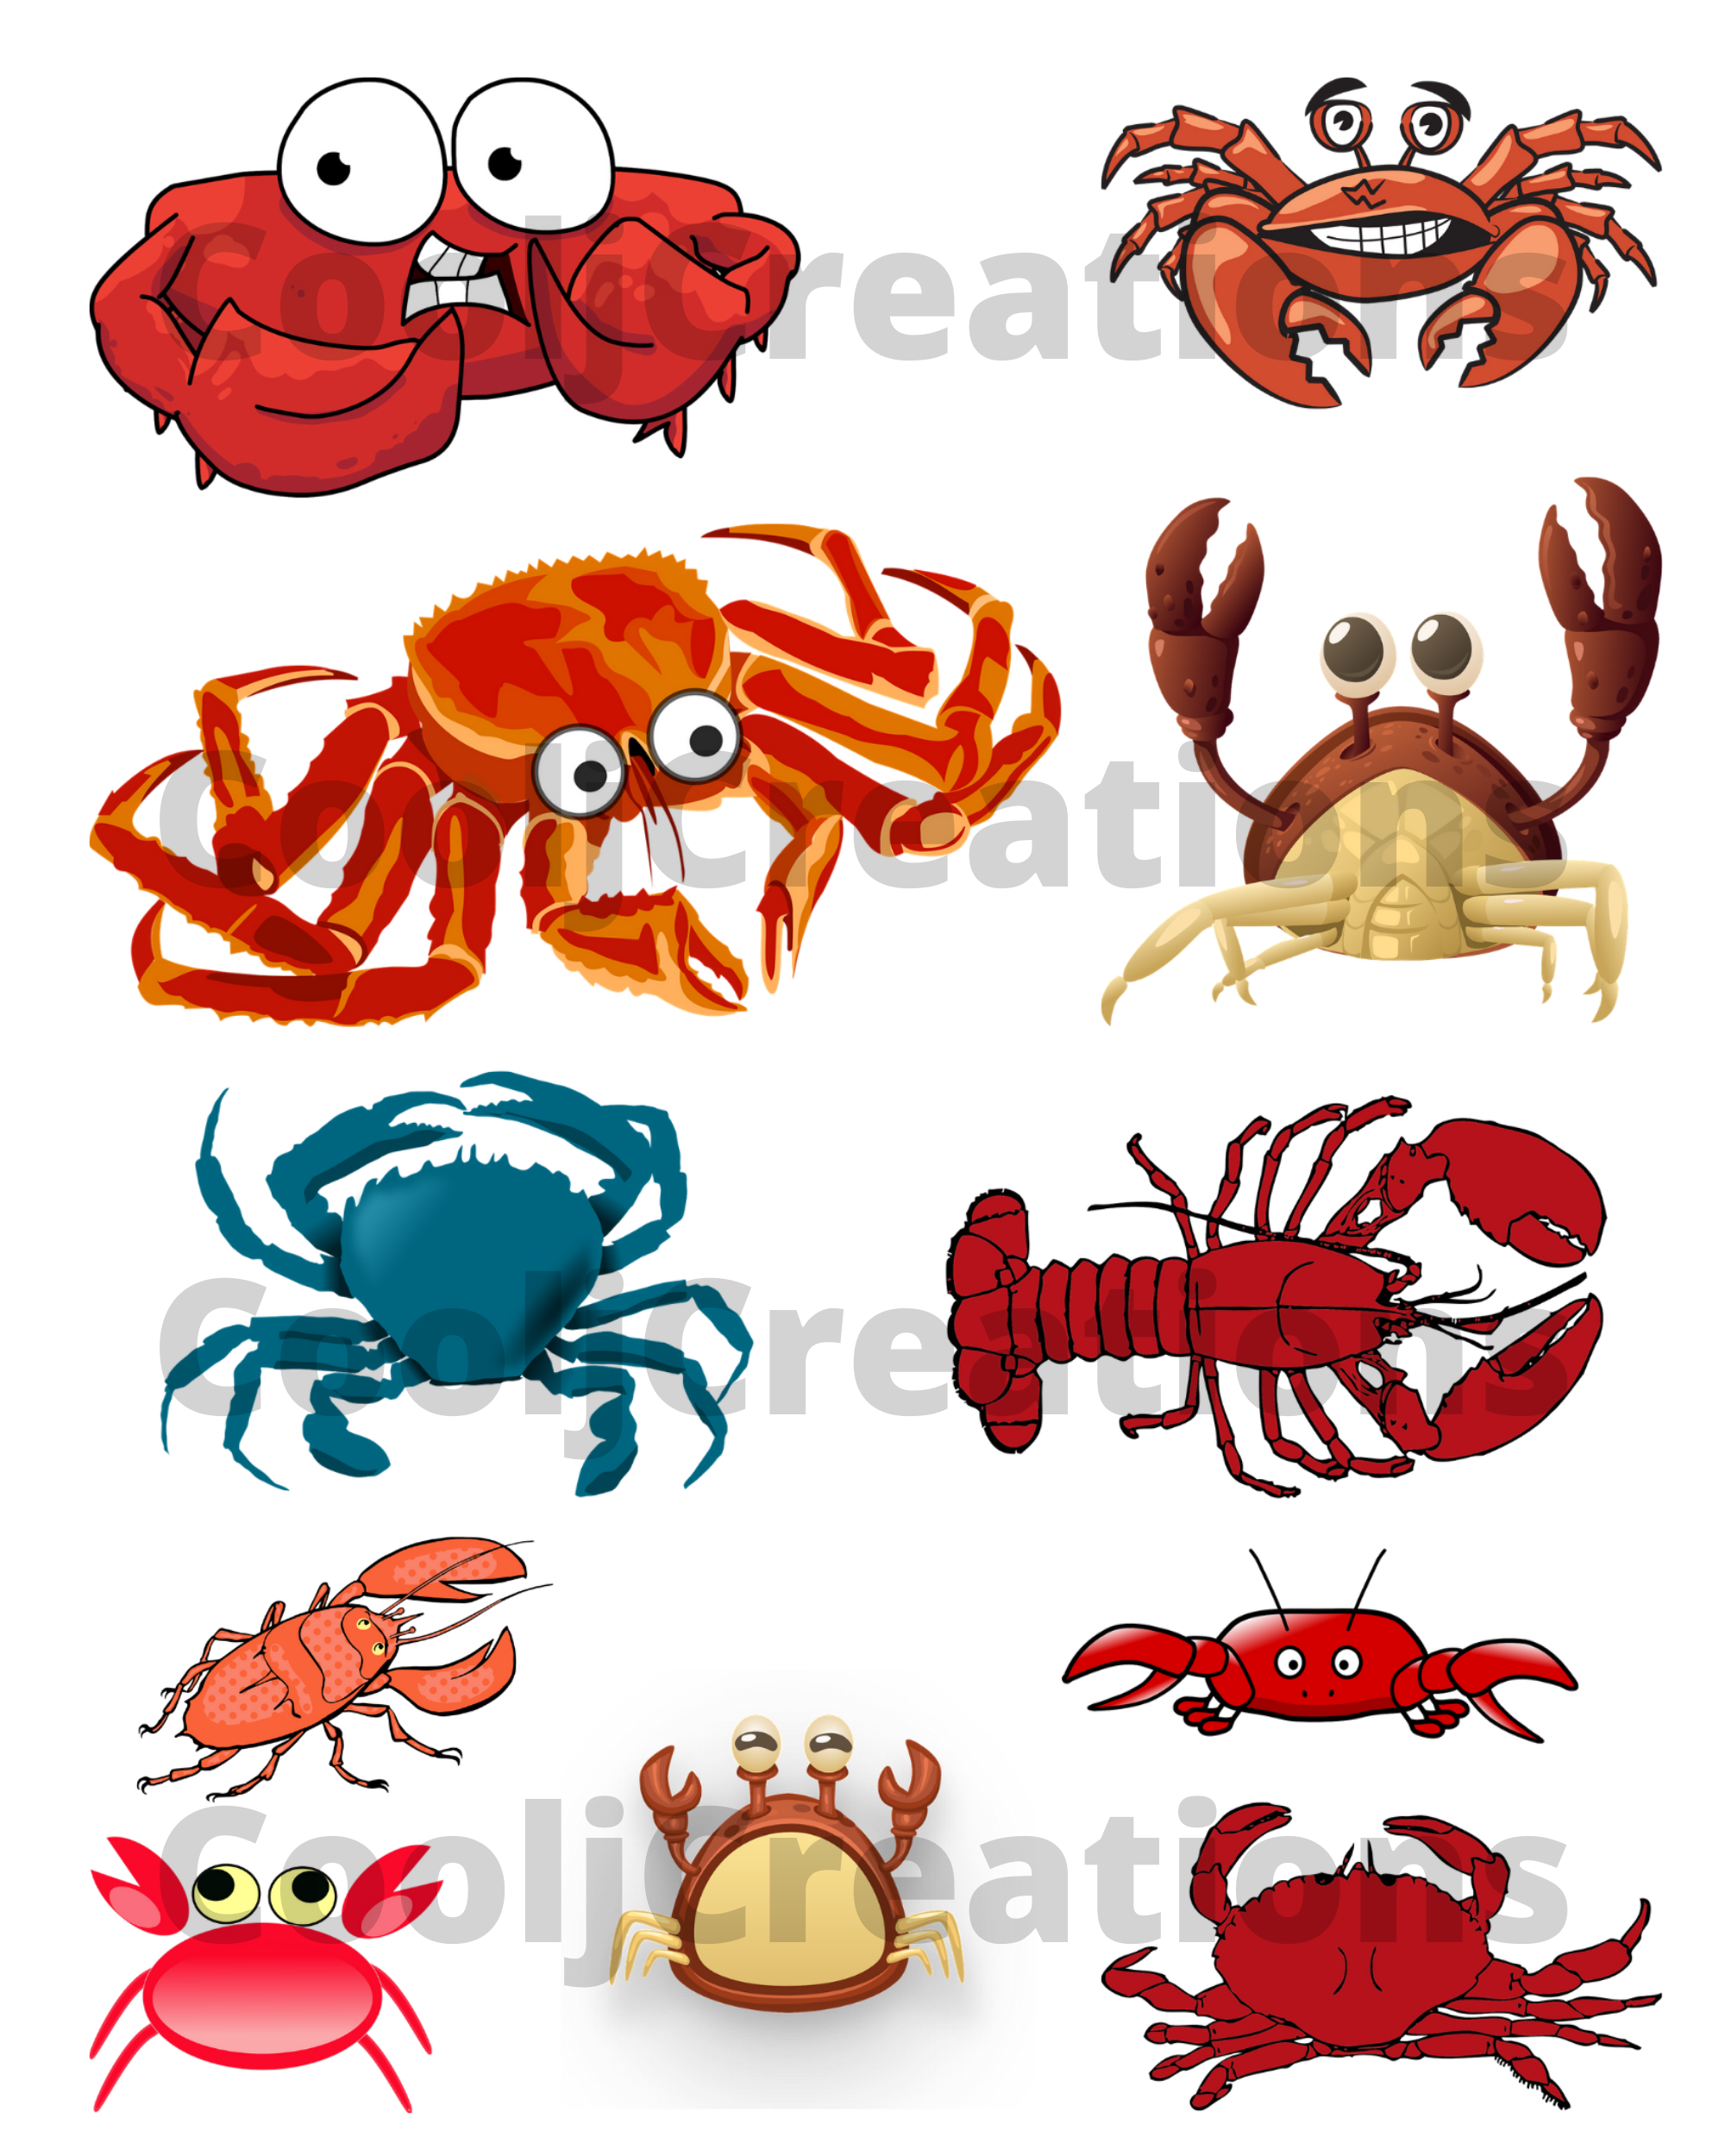 Crab and Lobster Clip Art Images in ...